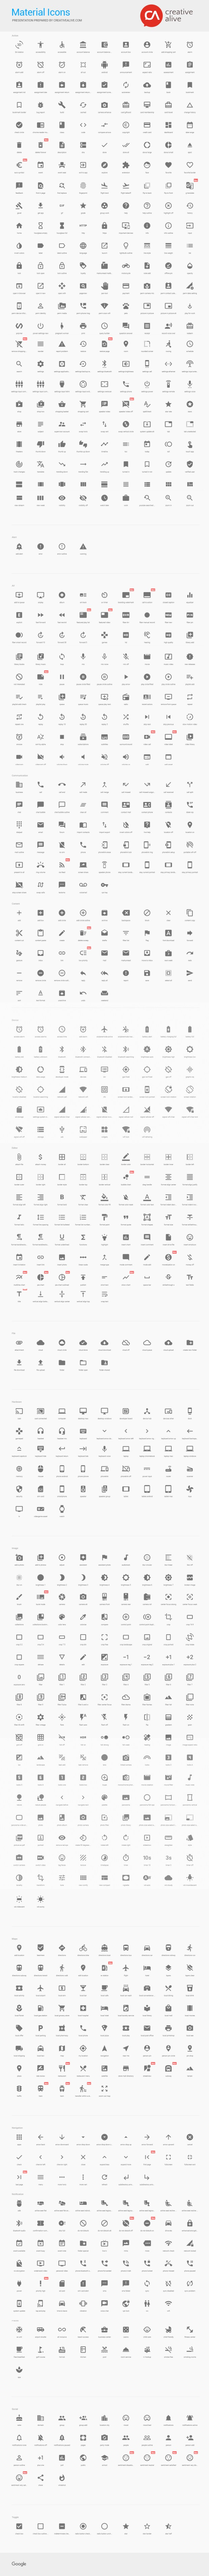 PDF Cheat Sheet for Material icons by Google - Creative Alive